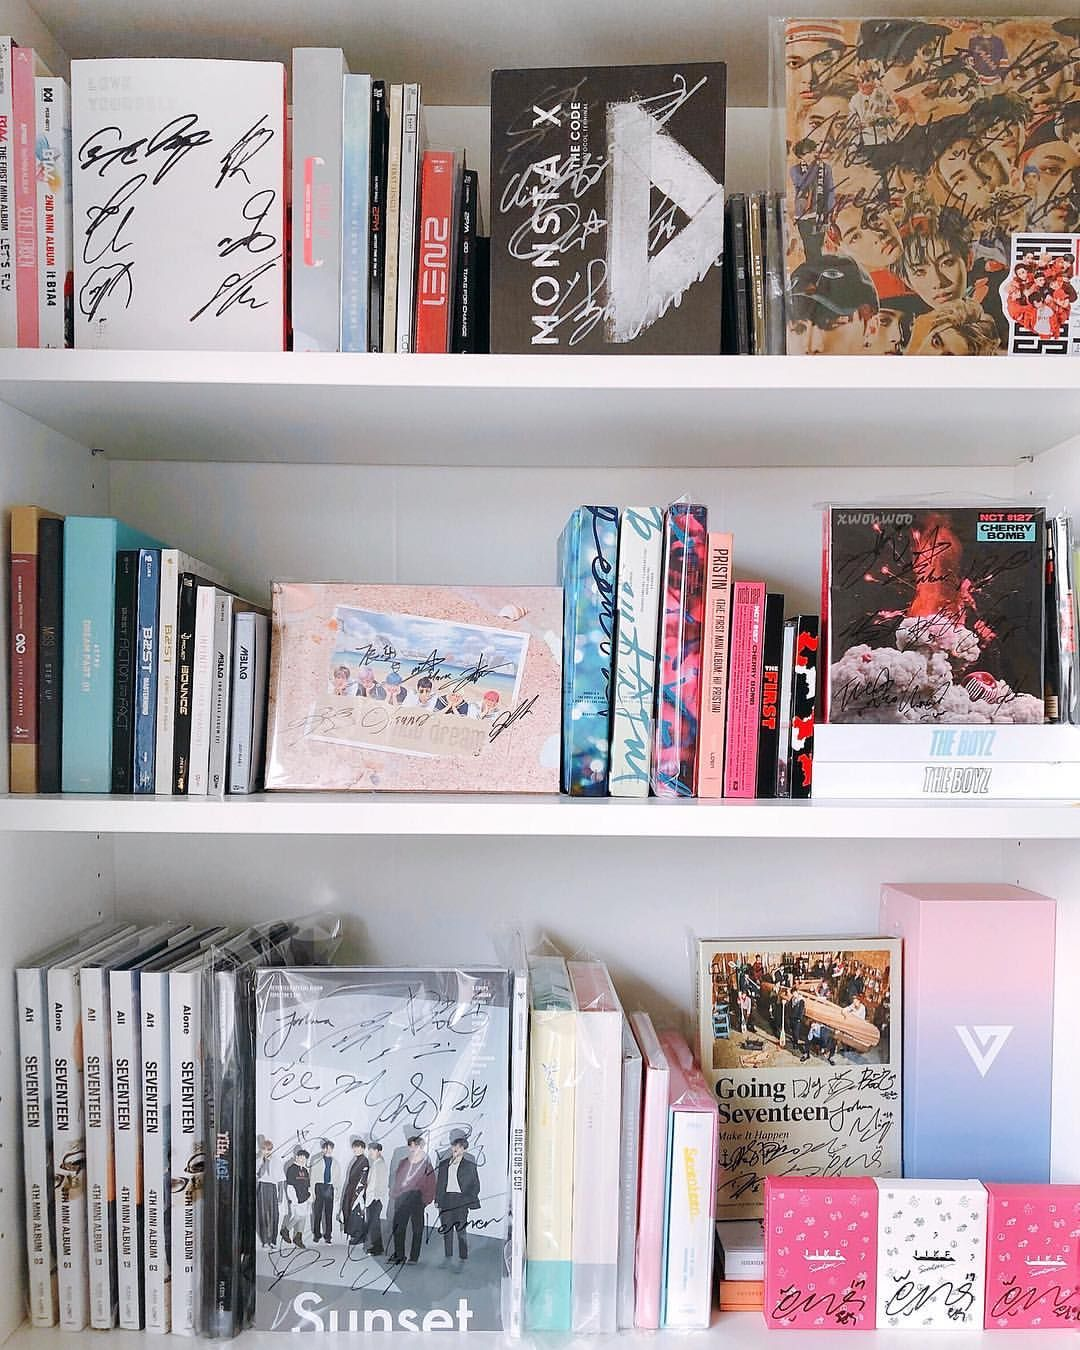 Kpop Bedroom Tumblr Xwonwoo Xwonwoo On Instagram Kpop Album Collection